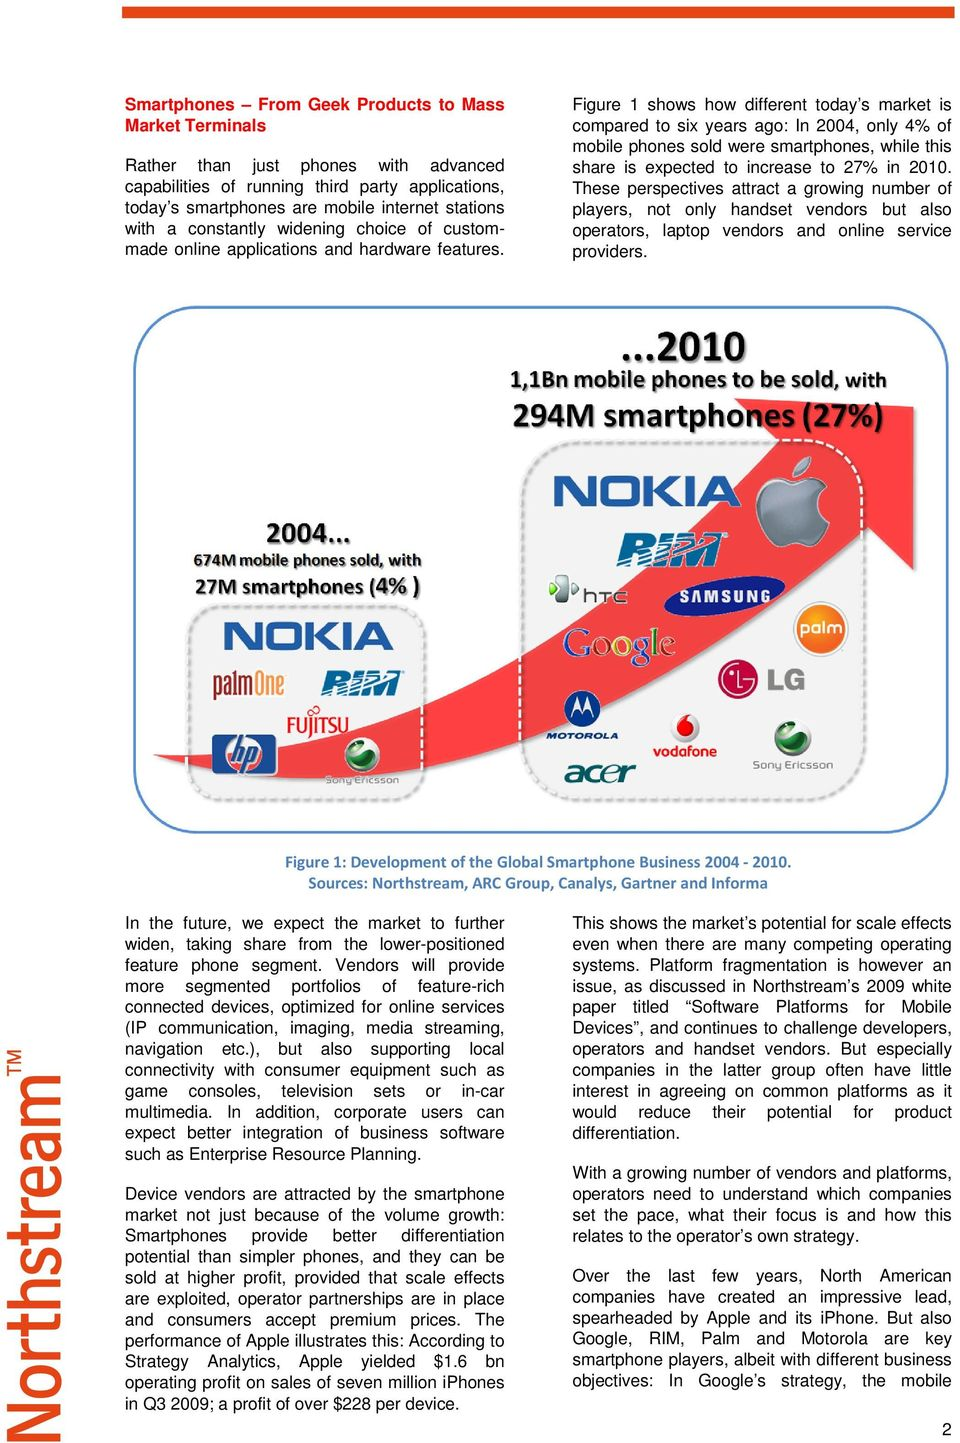 Figure 1 shows how different today s market is compared to six years ago: In 2004, only 4% of mobile phones sold were smartphones, while this share is expected to increase to 27% in 2010.